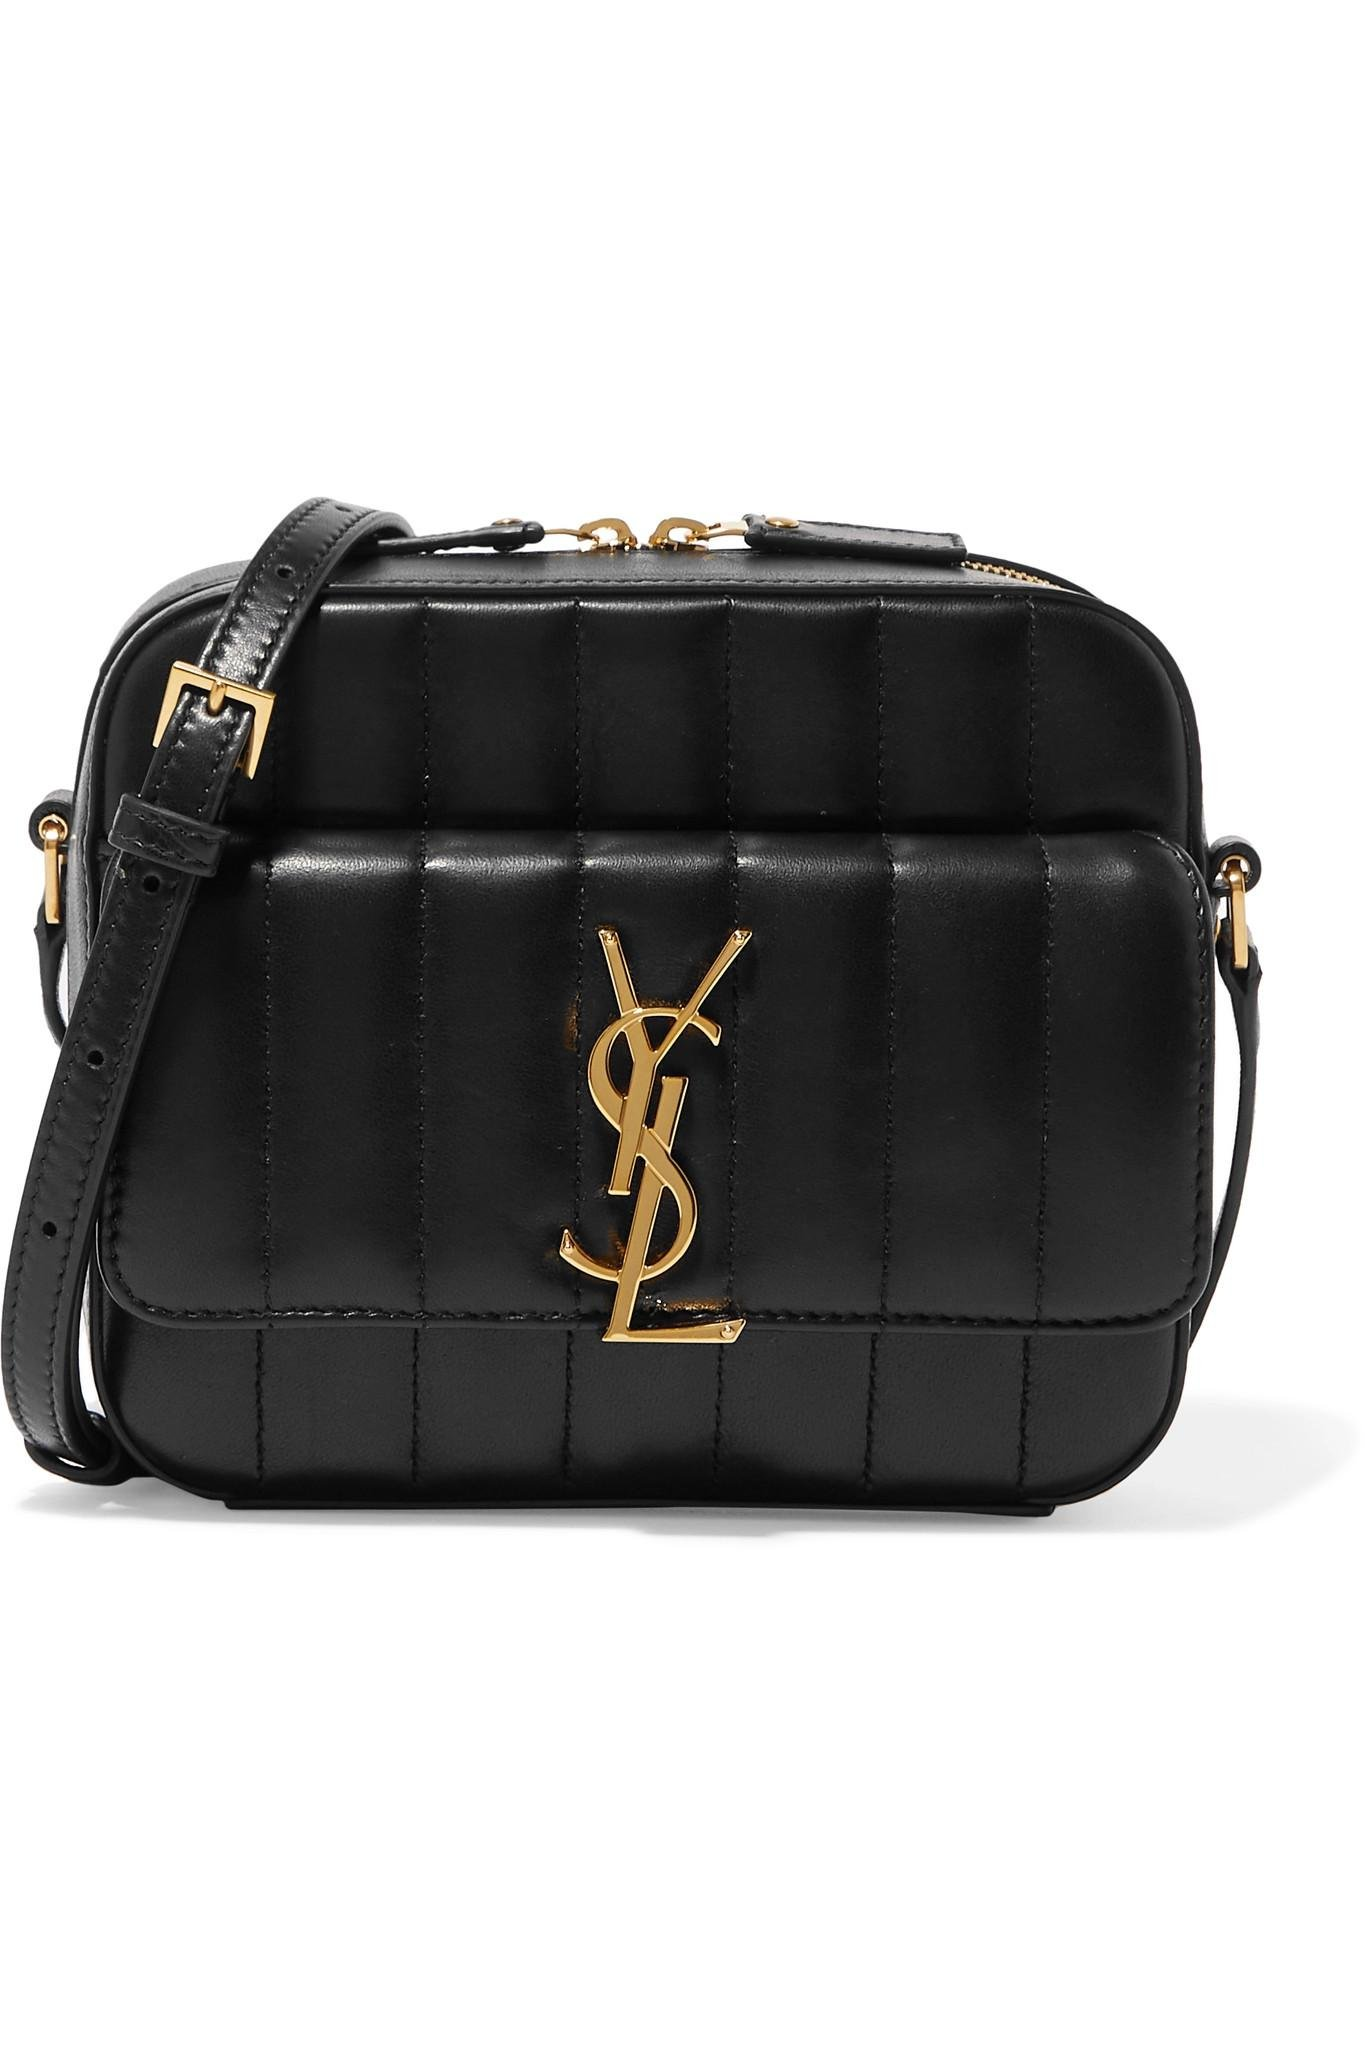 2df2d39703cec Lyst - Saint Laurent Vicky Quilted Leather Camera Bag in Black